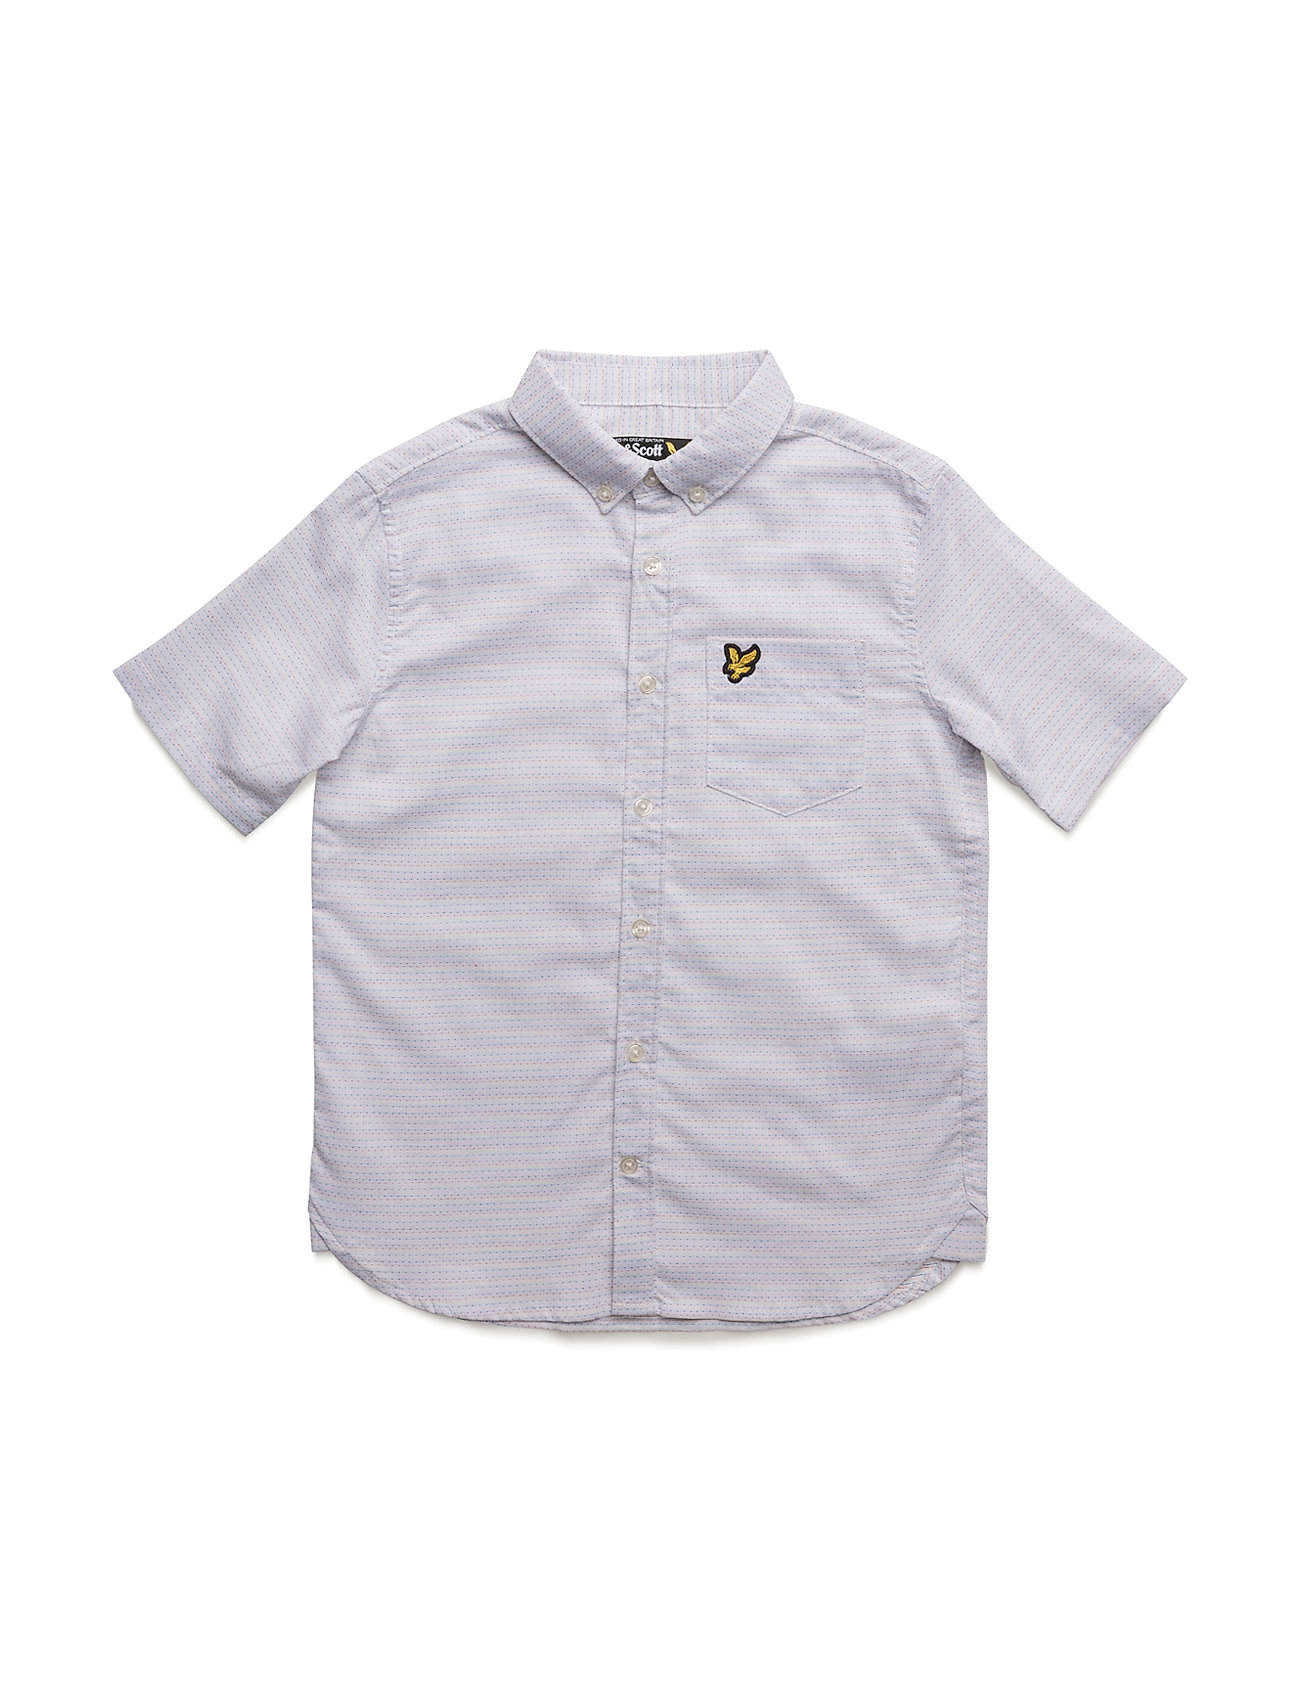 912fe28b63e Stilige Lyle & Scott Running Stitch Shirt Ss Lyle & Scott Junior til i høy  kvalitet